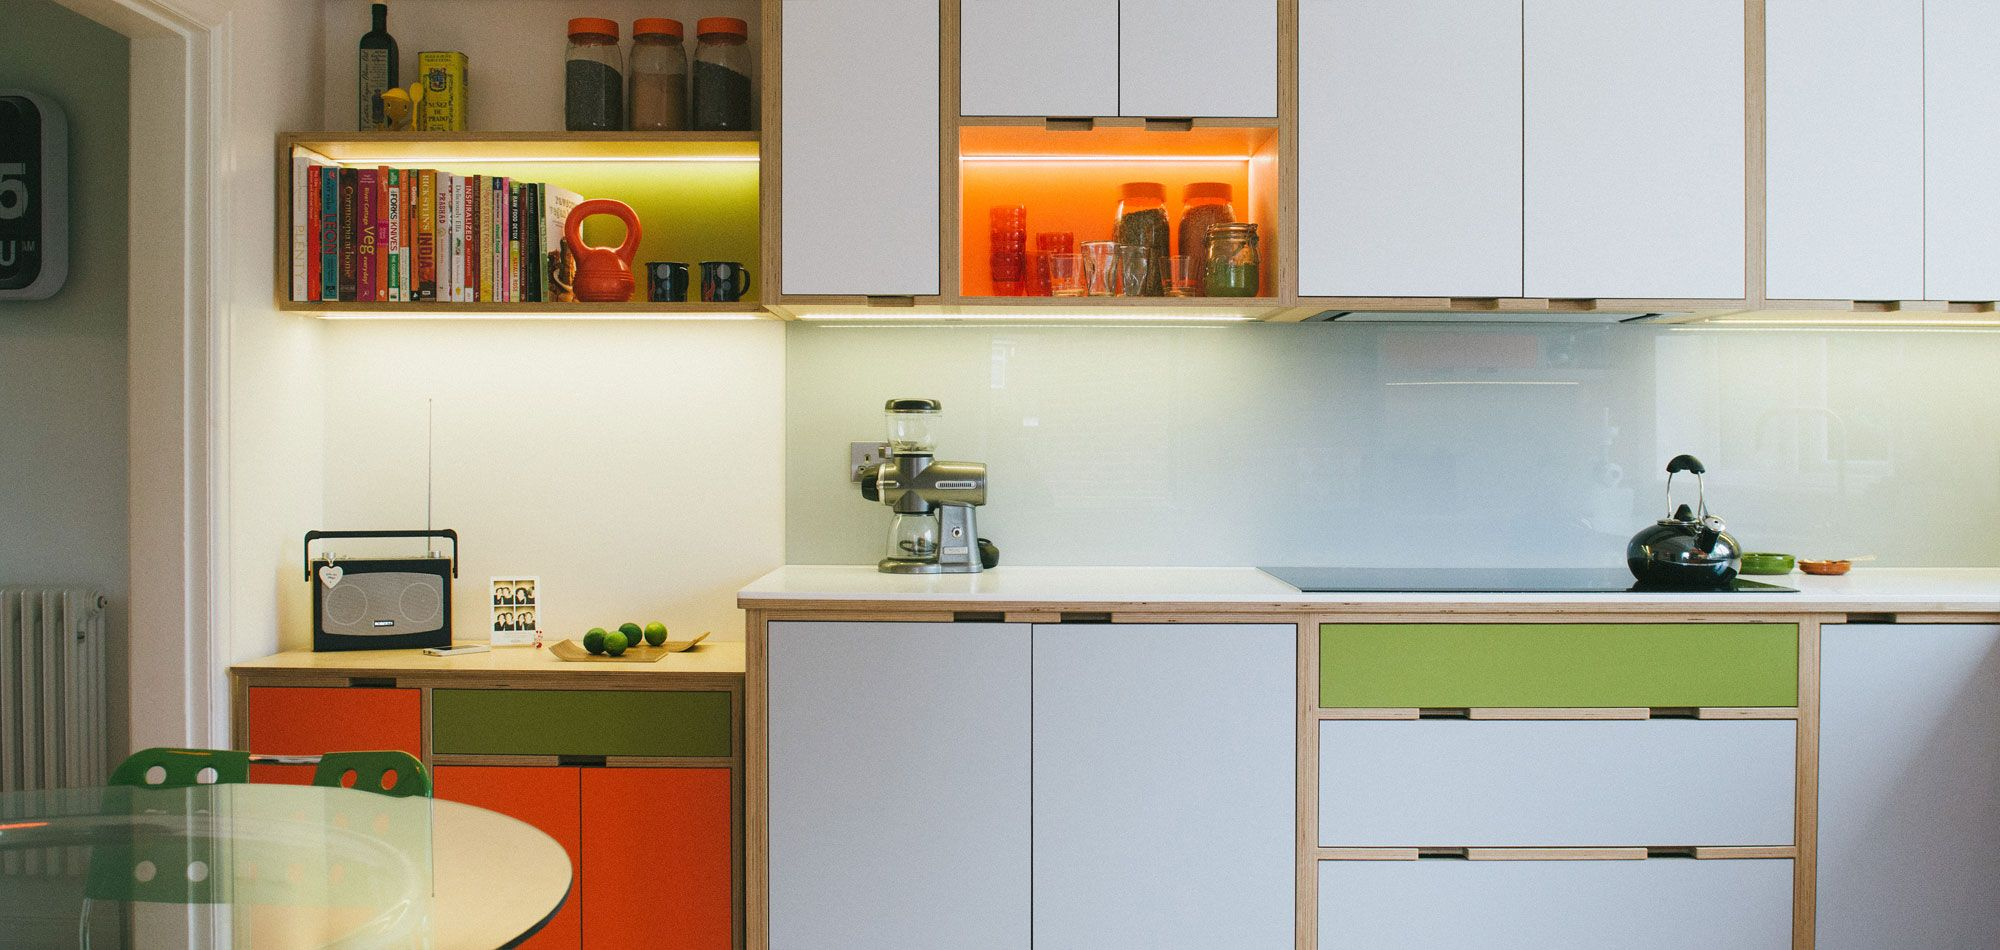 birch plywood kitchen with laminated doors and shelving units don t